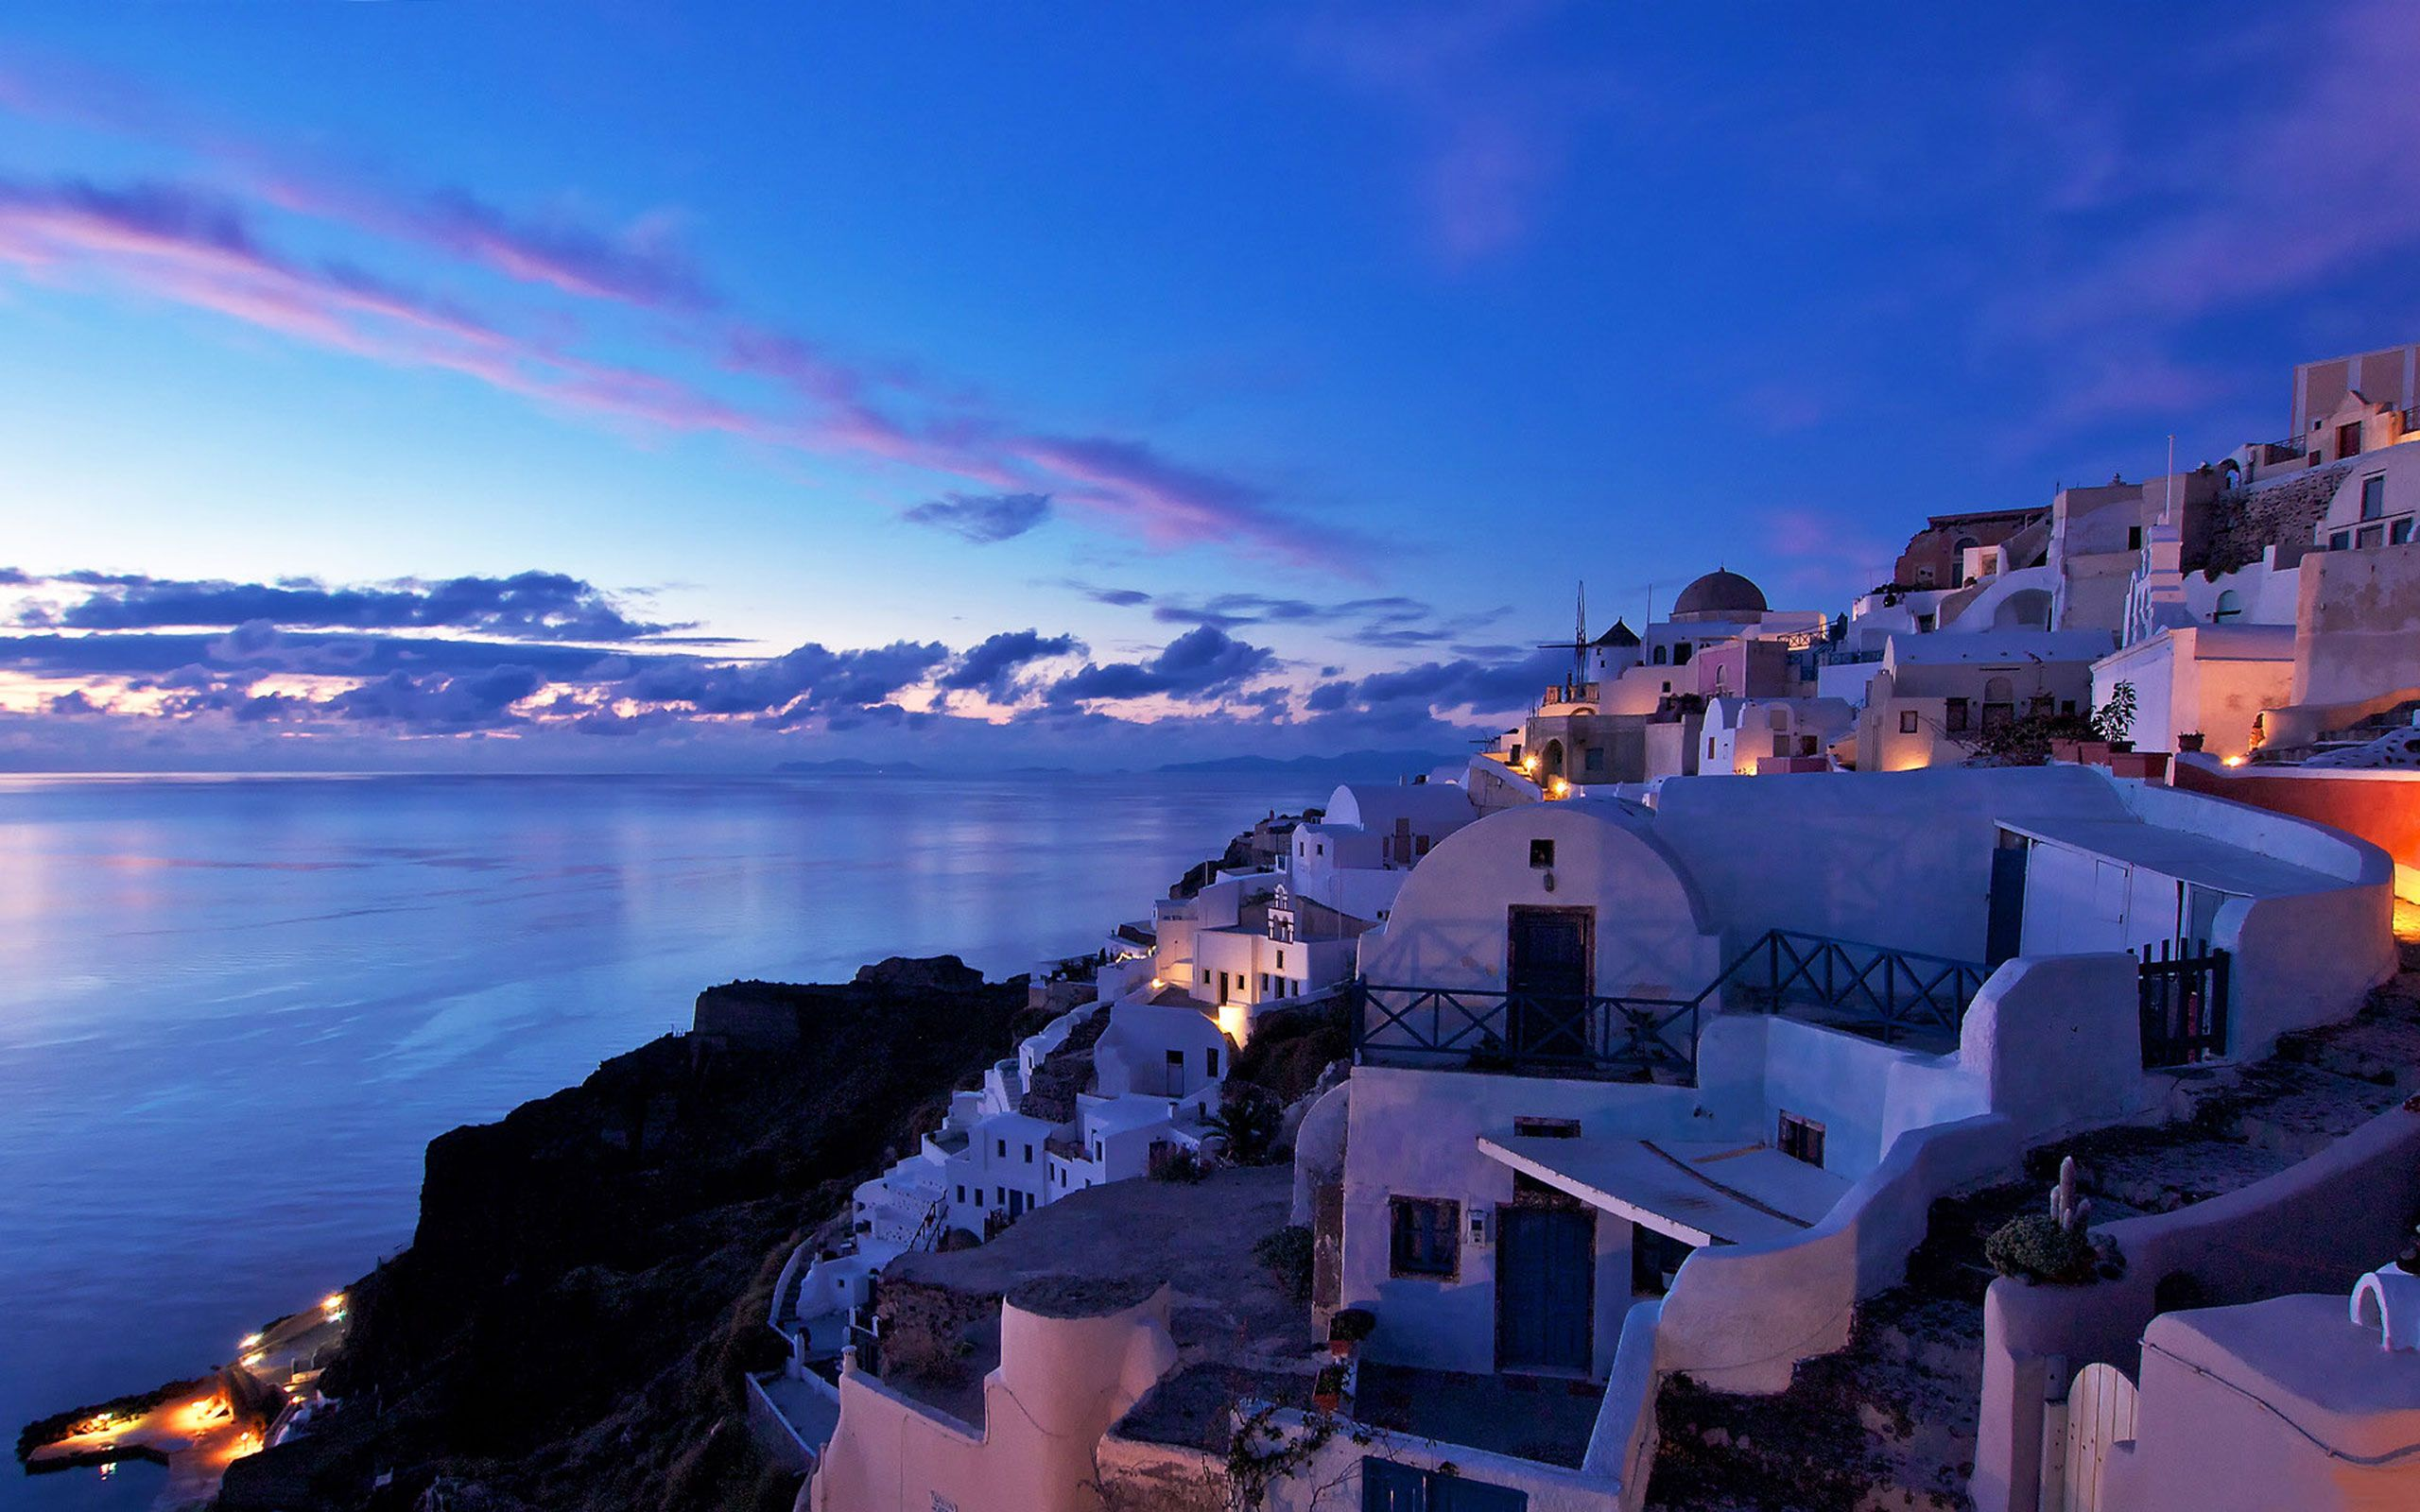 greece landscape wallpaper bing images